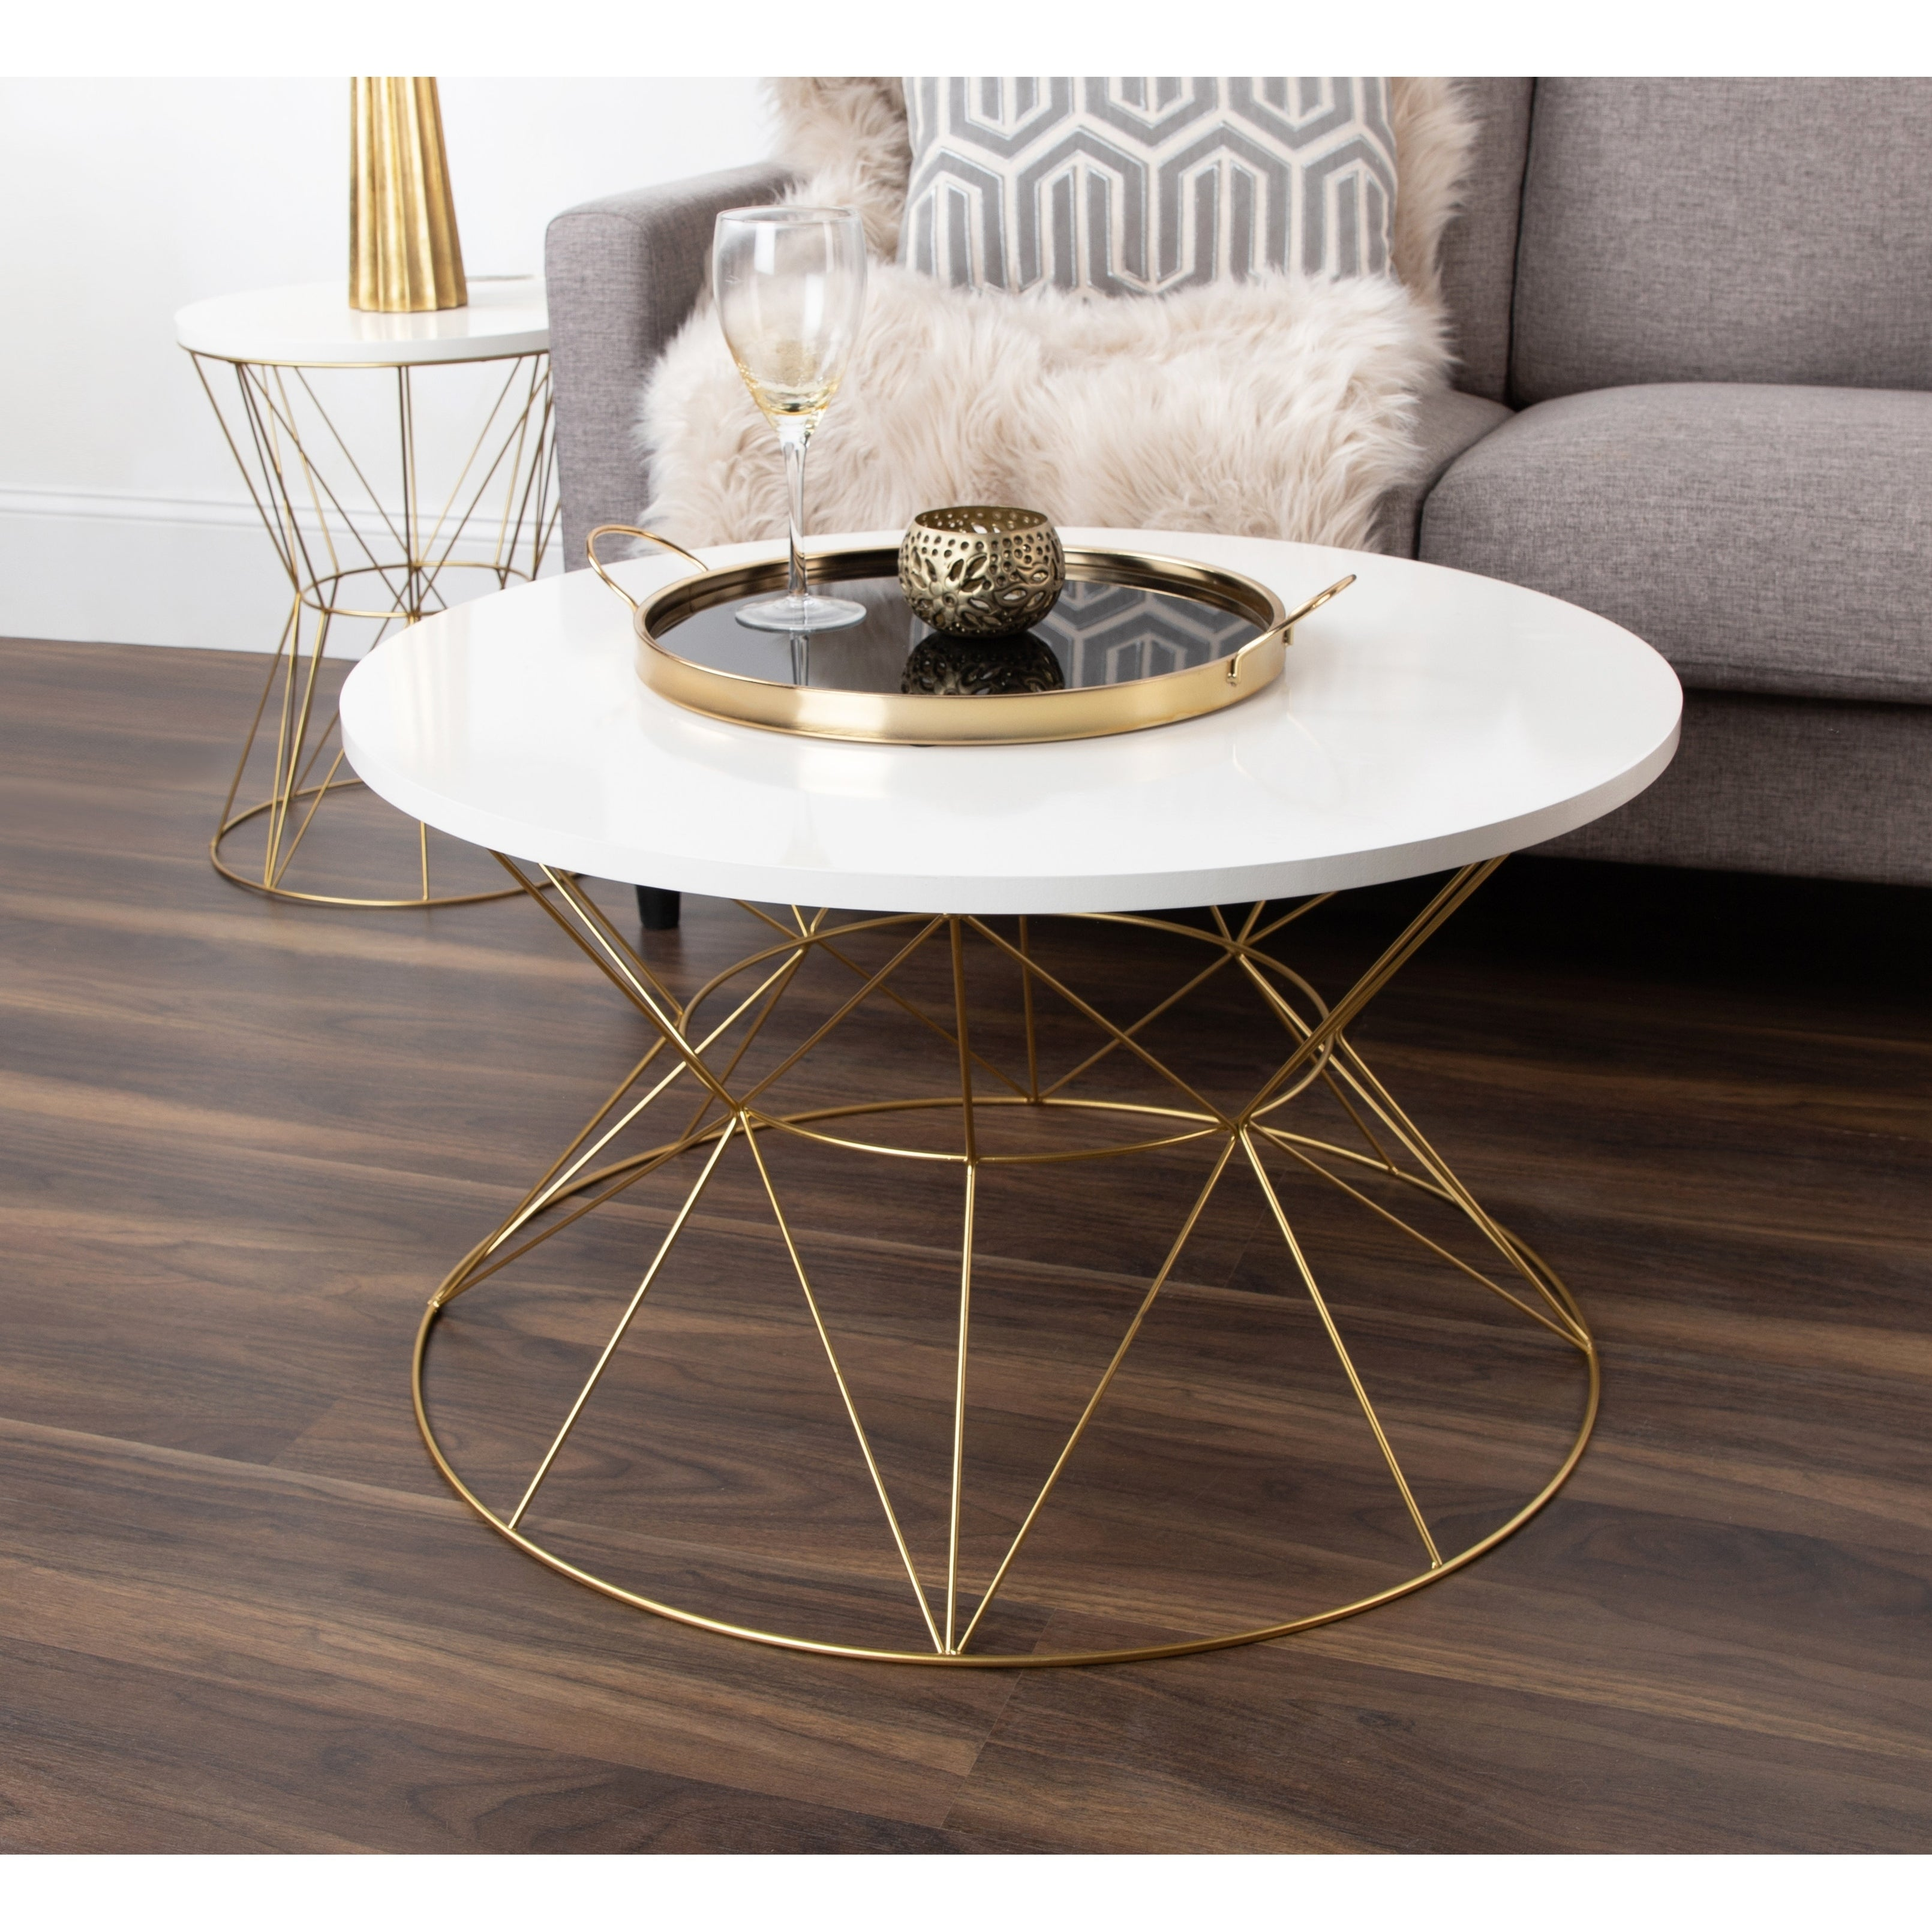 Shop Kate And Laurel Mendel Round Metal Coffee Table   On Sale   Free  Shipping Today   Overstock.com   17783225